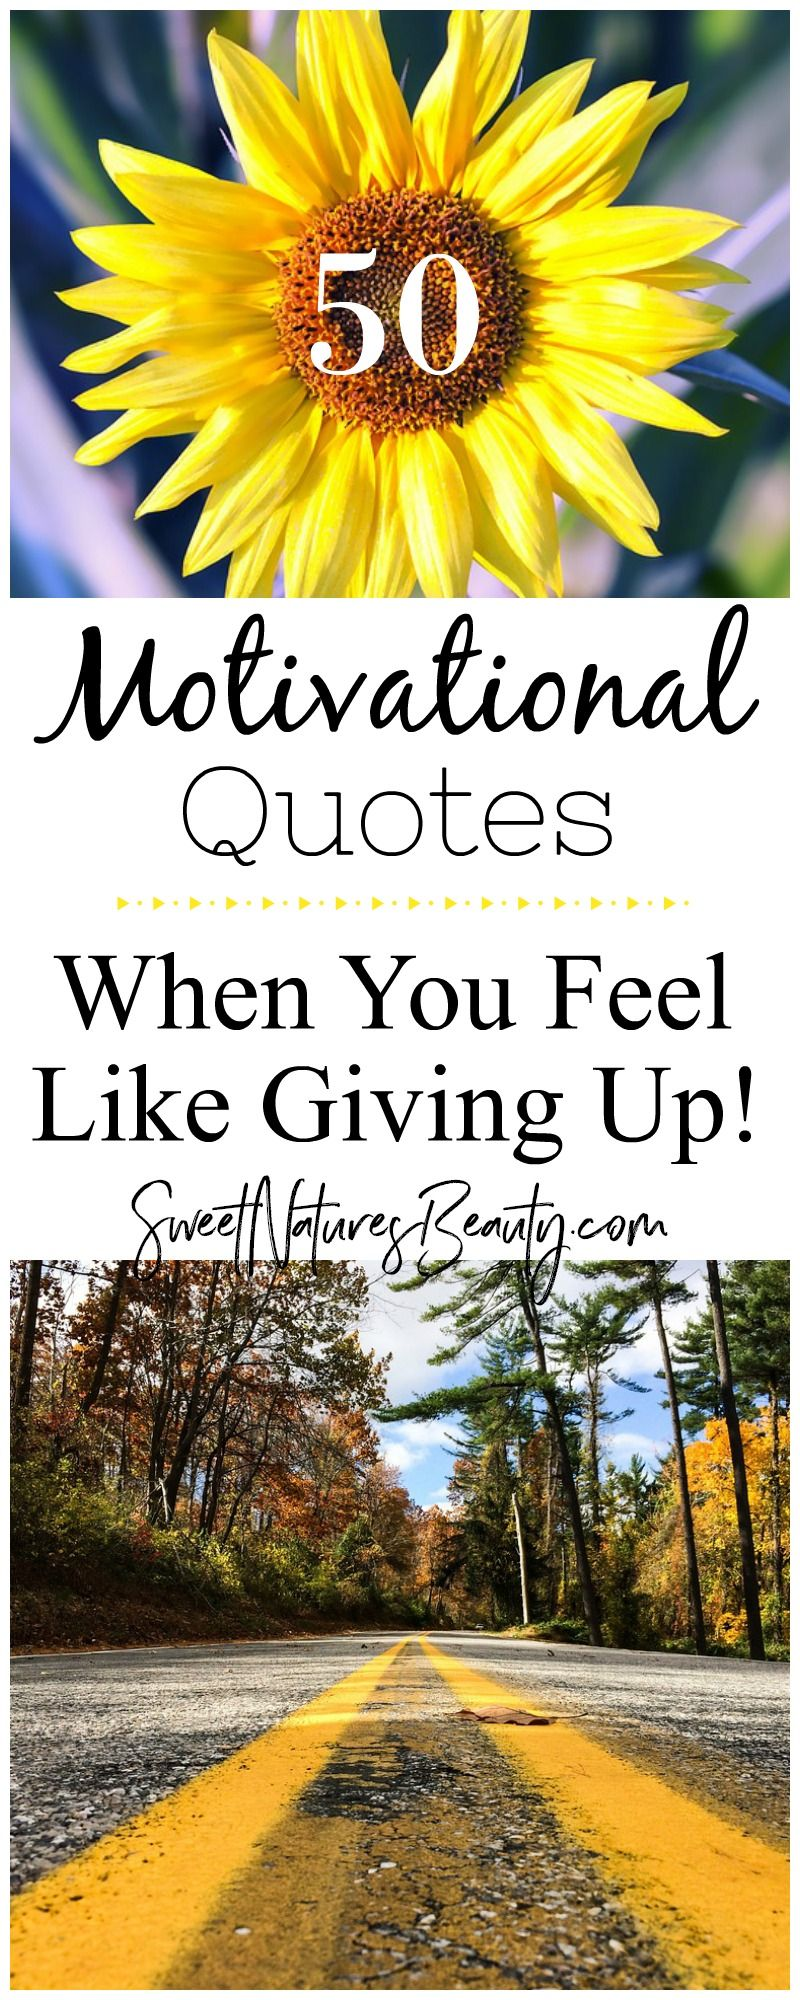 50 Motivational Quotes for When You Feel Like Giving Up